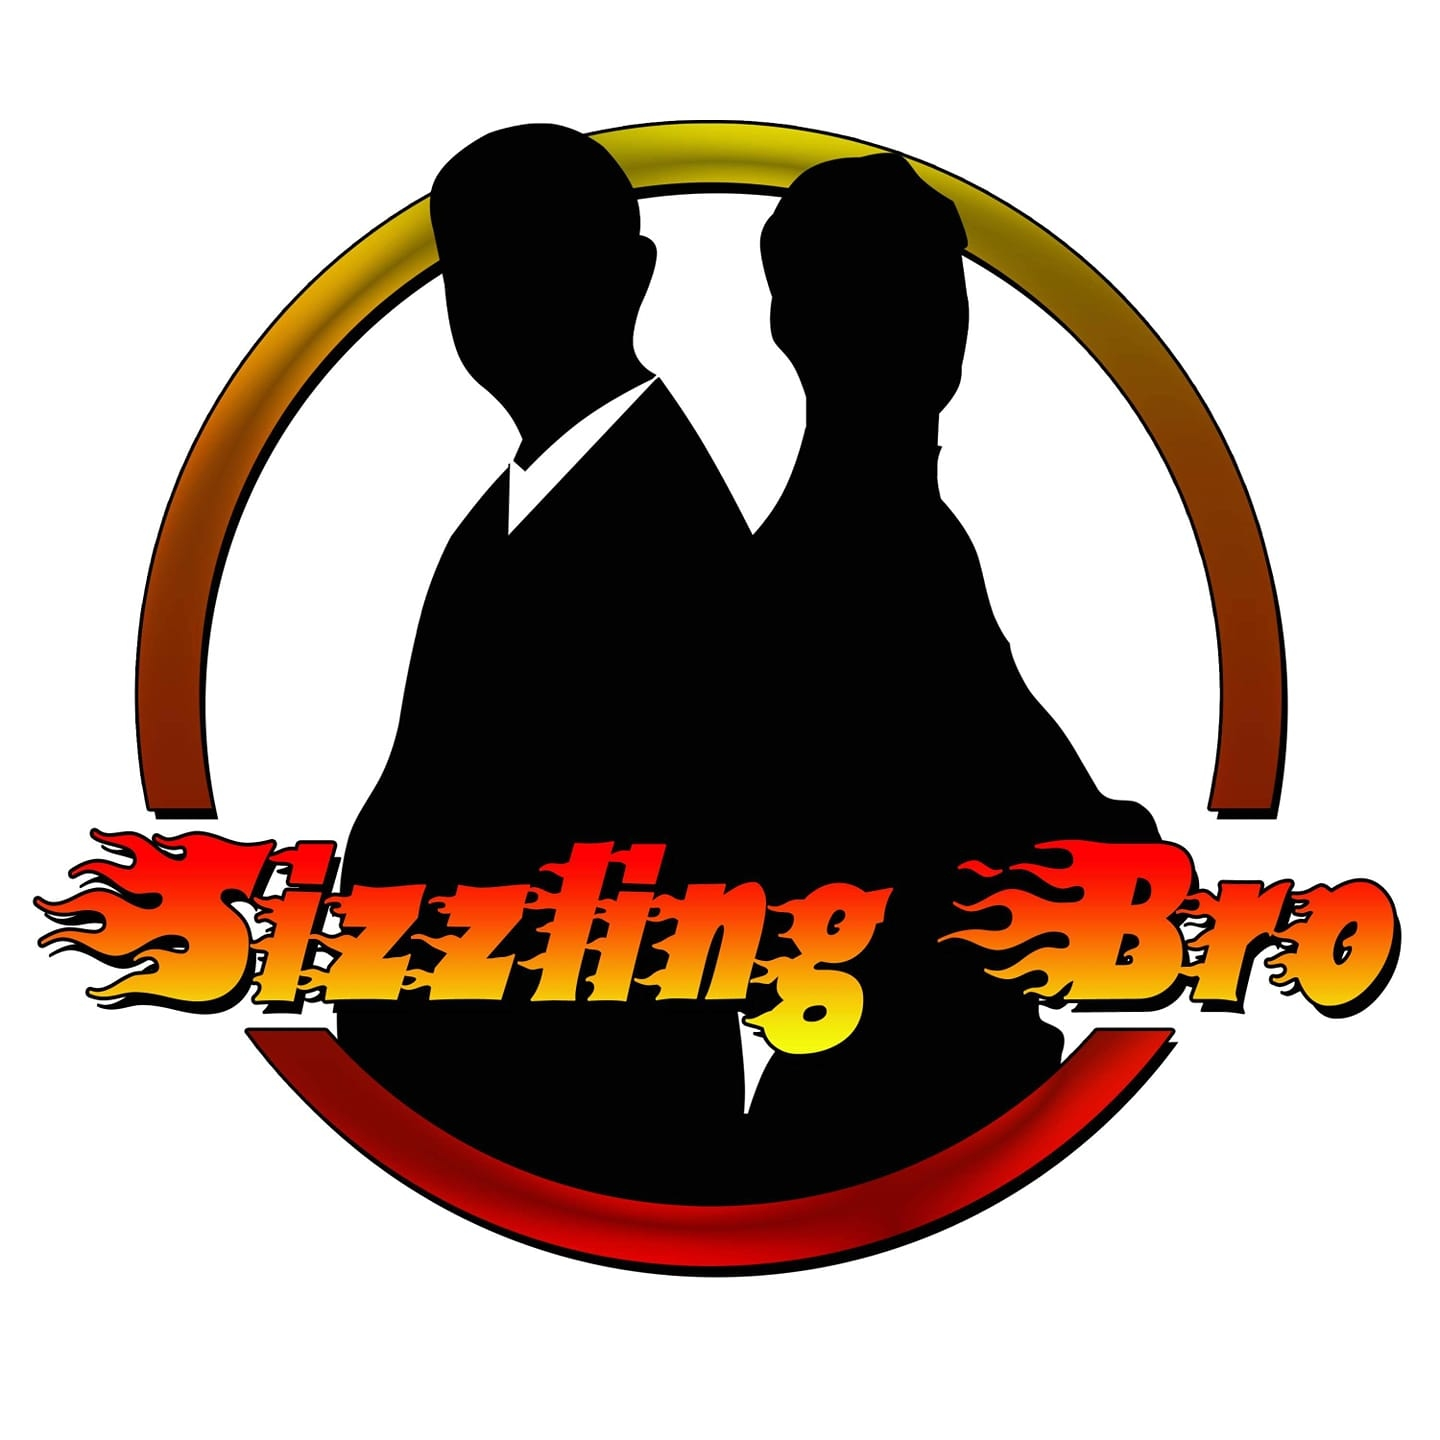 Sizzling Brothers 1 profile